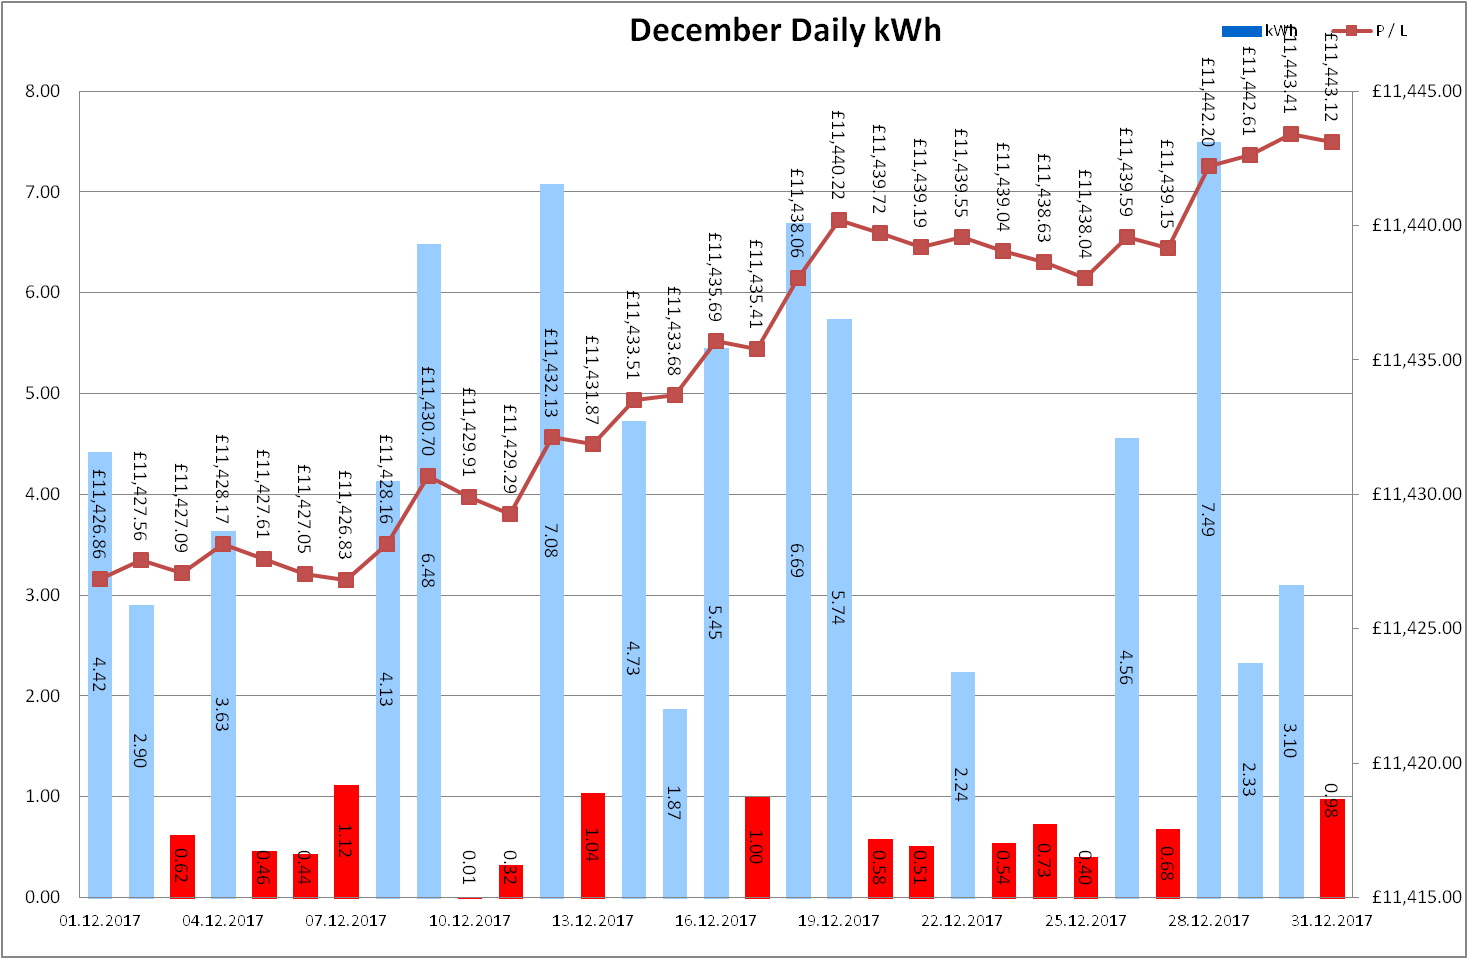 Total Output for December 2017